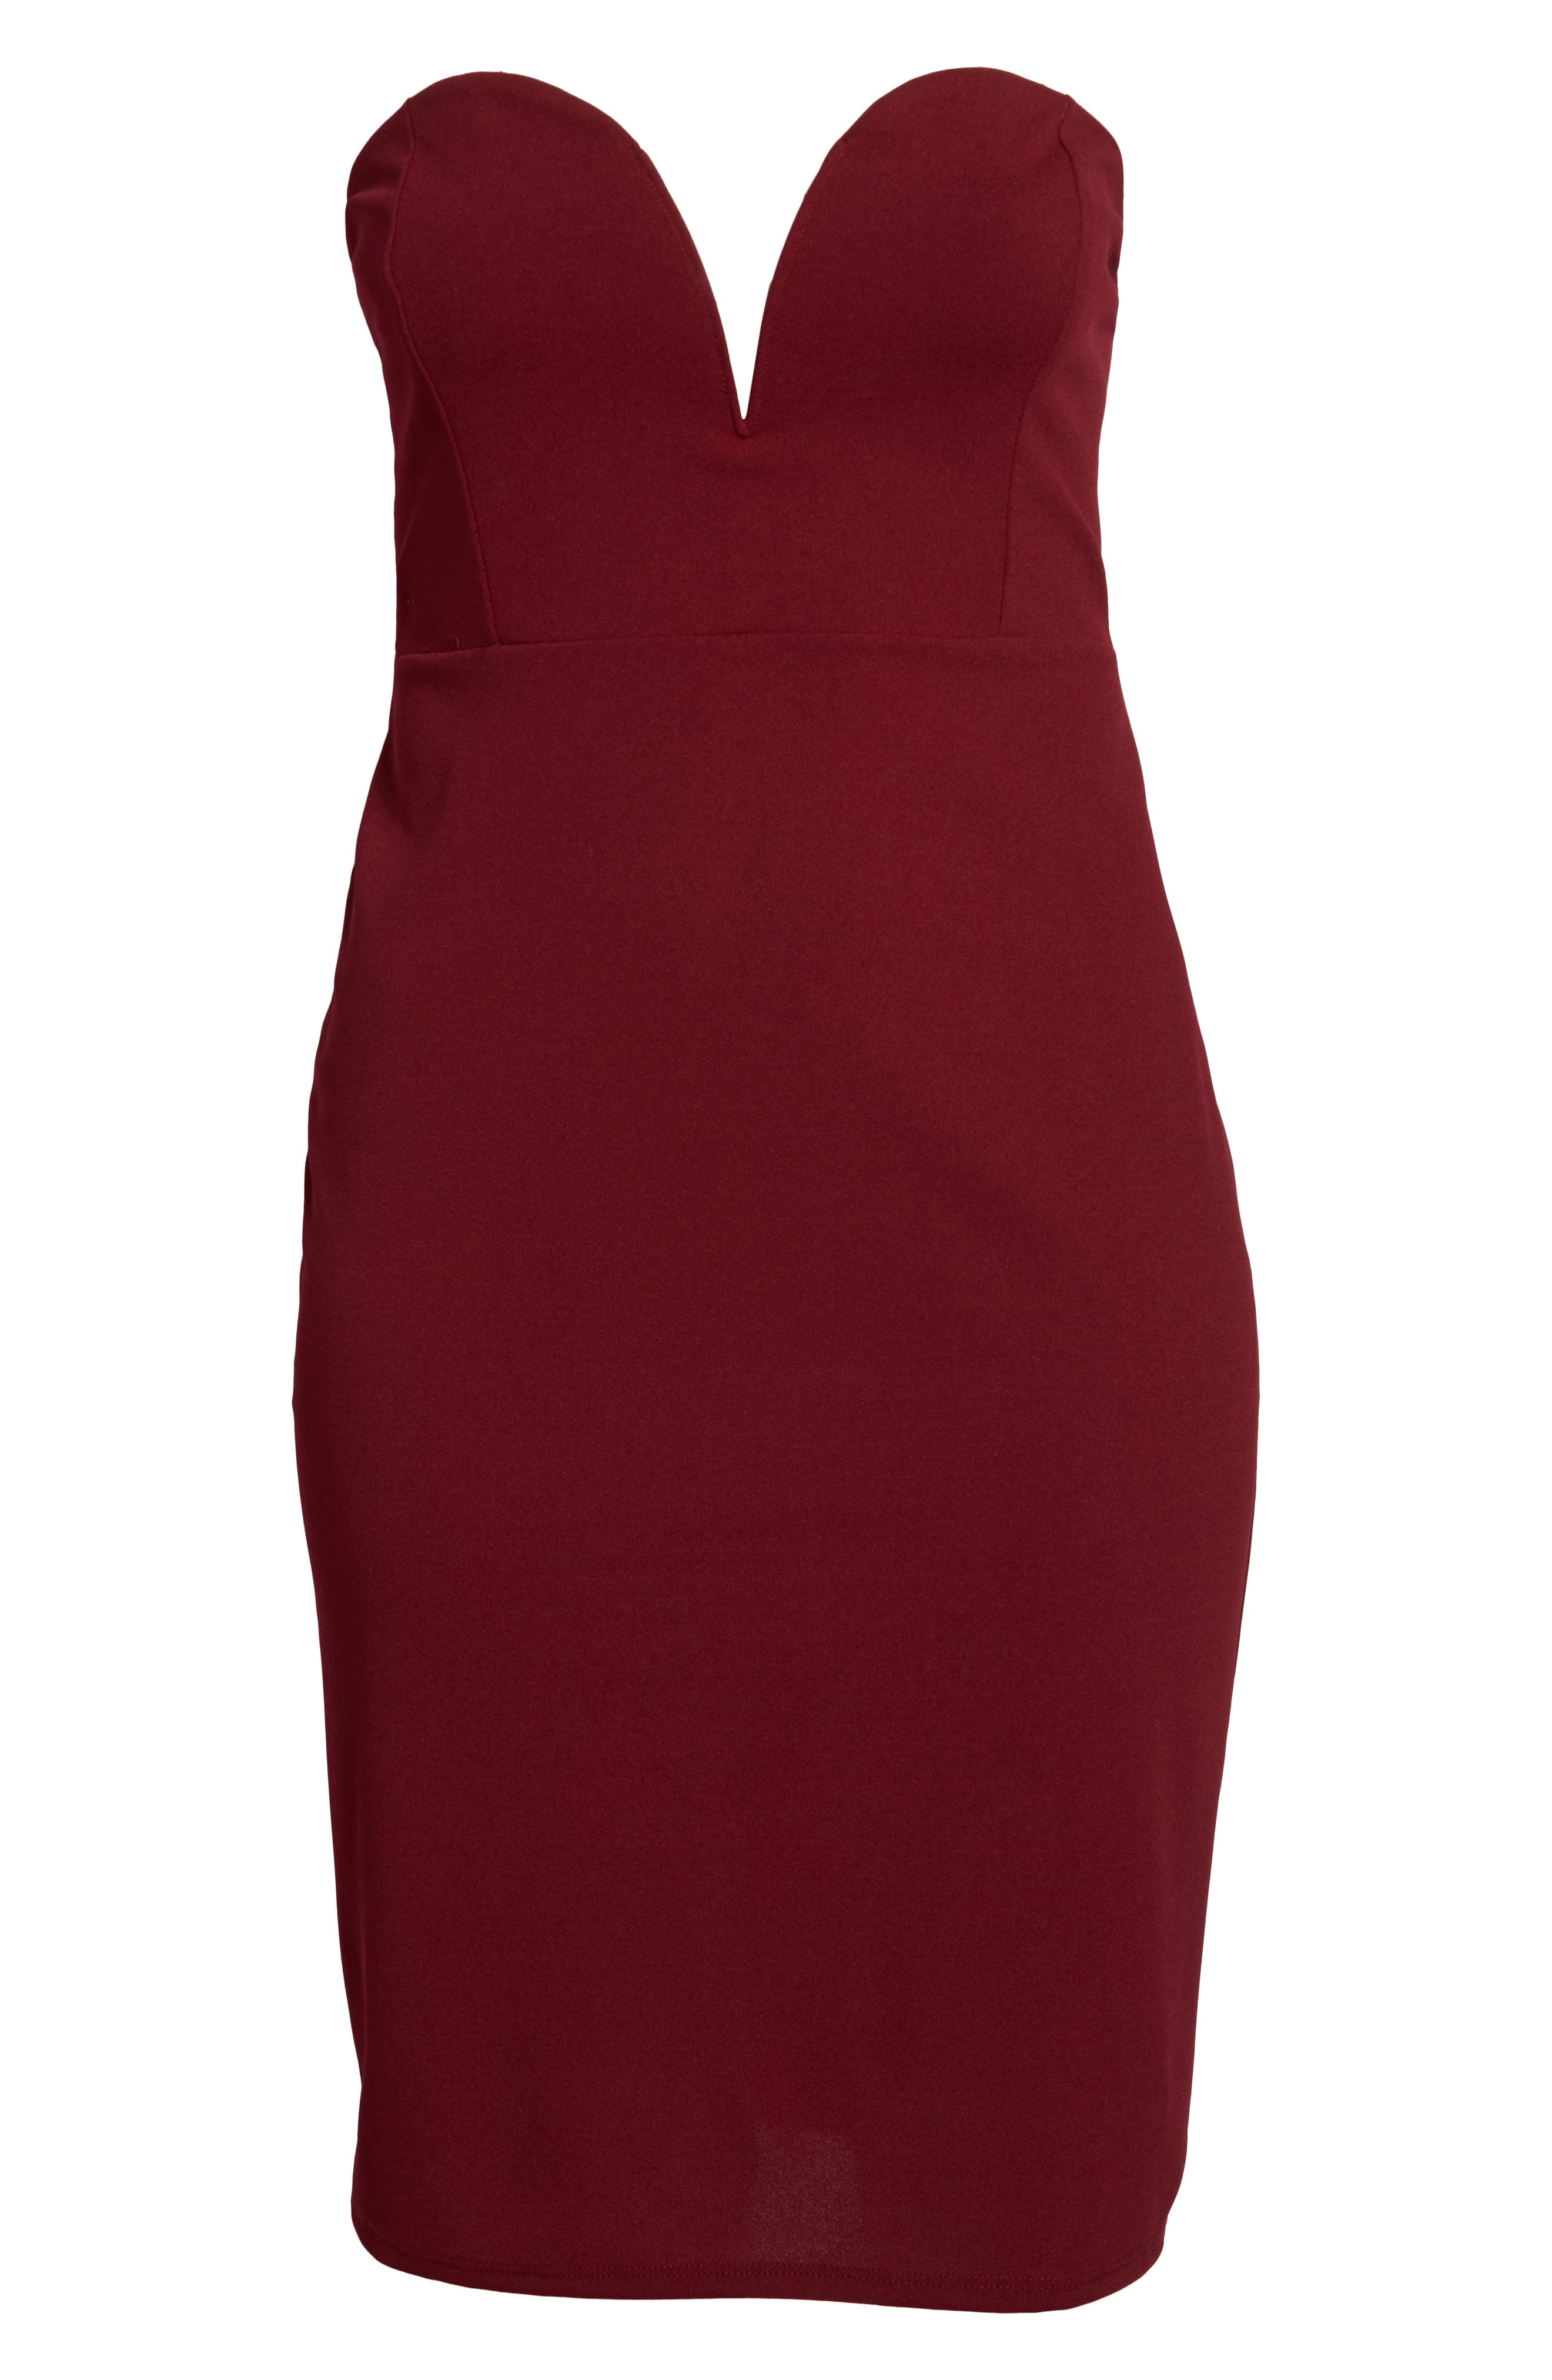 LEITH,                             Strapless Sheath Dress,                             Alternate thumbnail 7, color,                             RED GRAPE